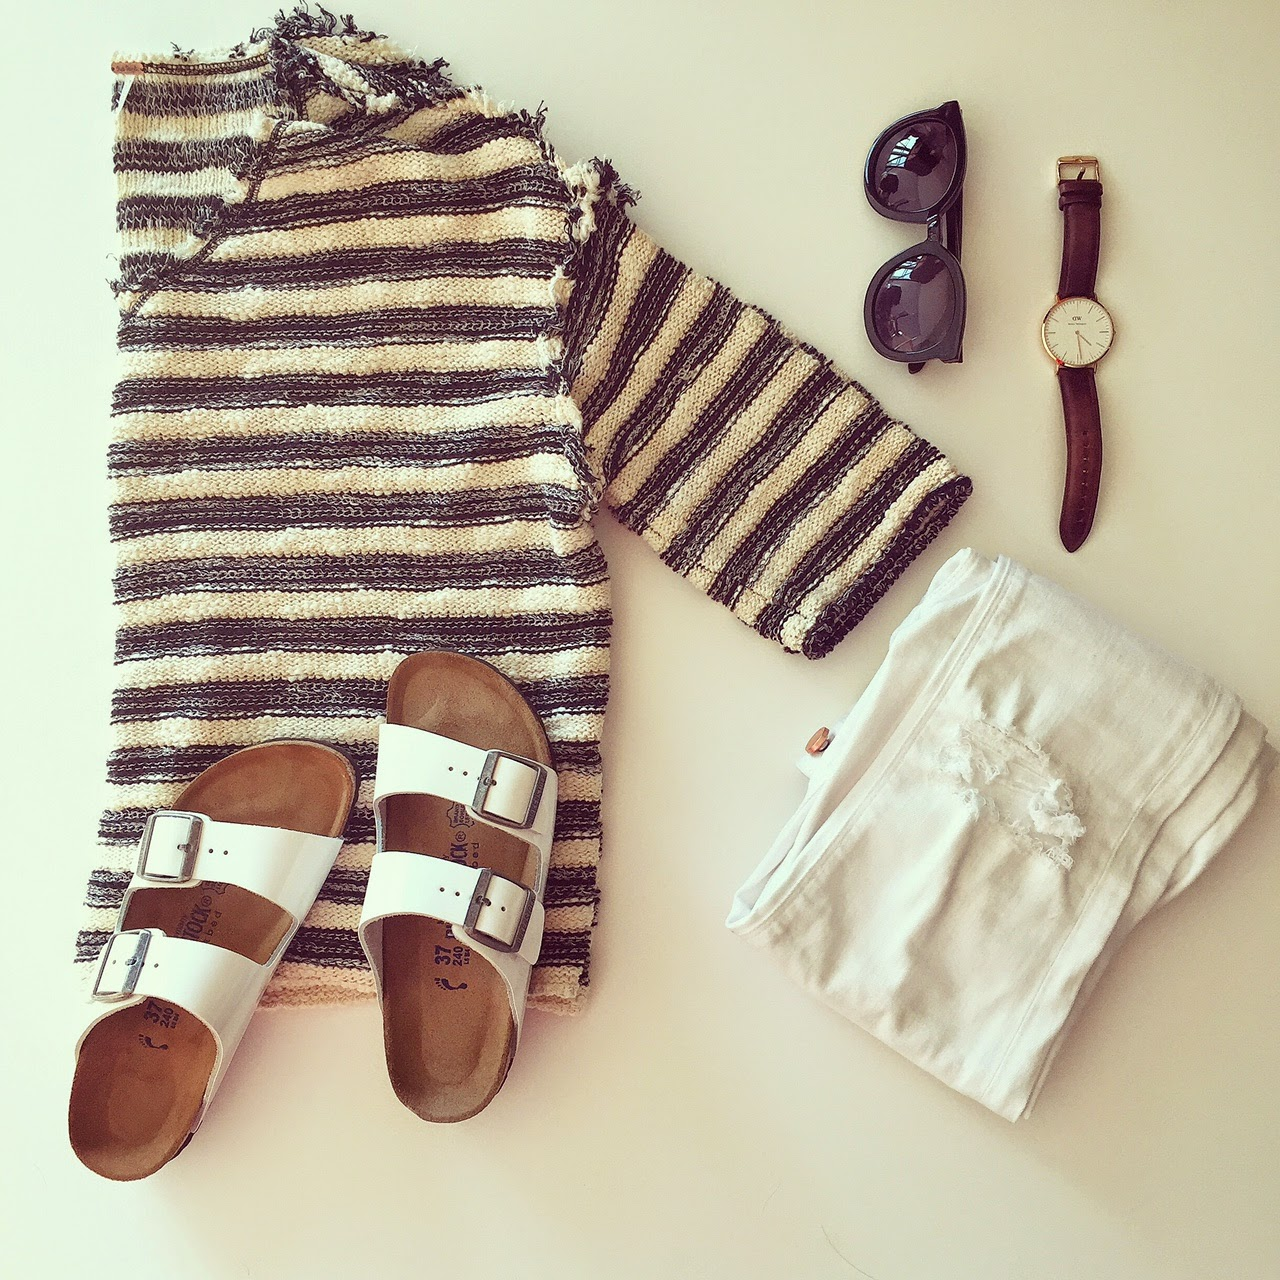 Free people stripe top, birkenstock, kanren walker super duper sunglasses, Daniel wellington watches, asos ripped white jeans, fashion blog